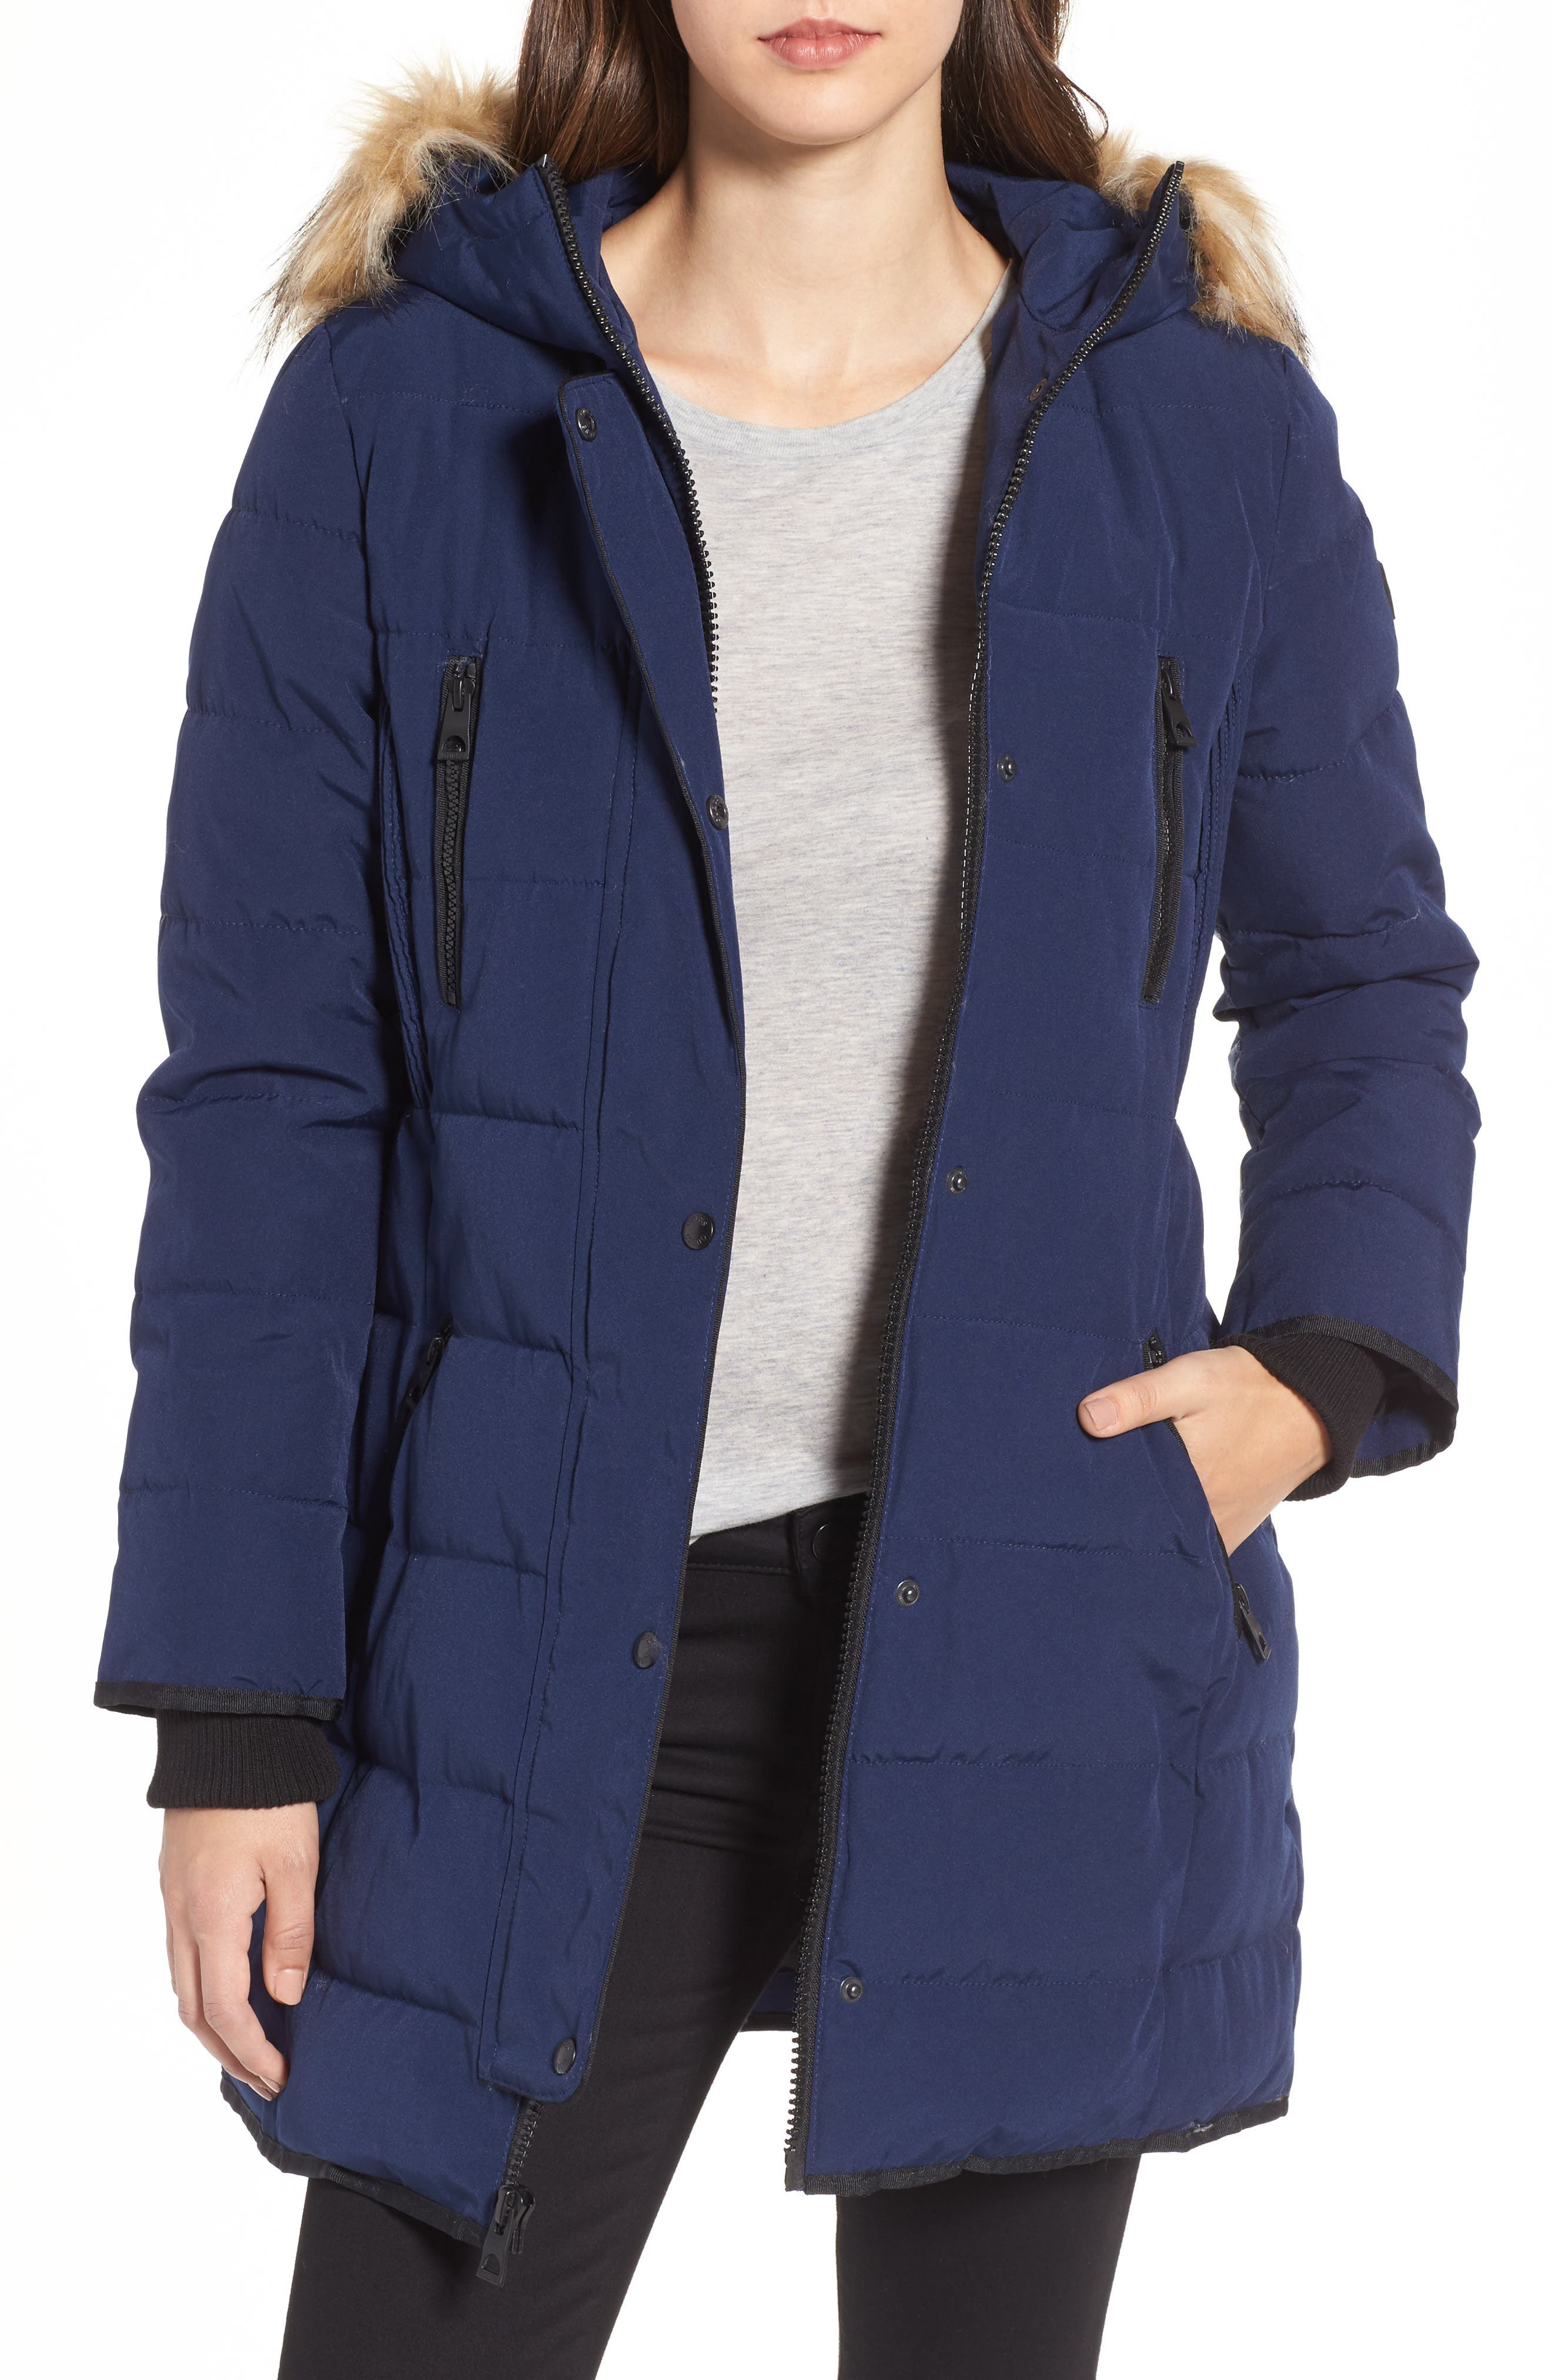 Main Image - GUESS Hooded Jacket with Faux Fur Trim